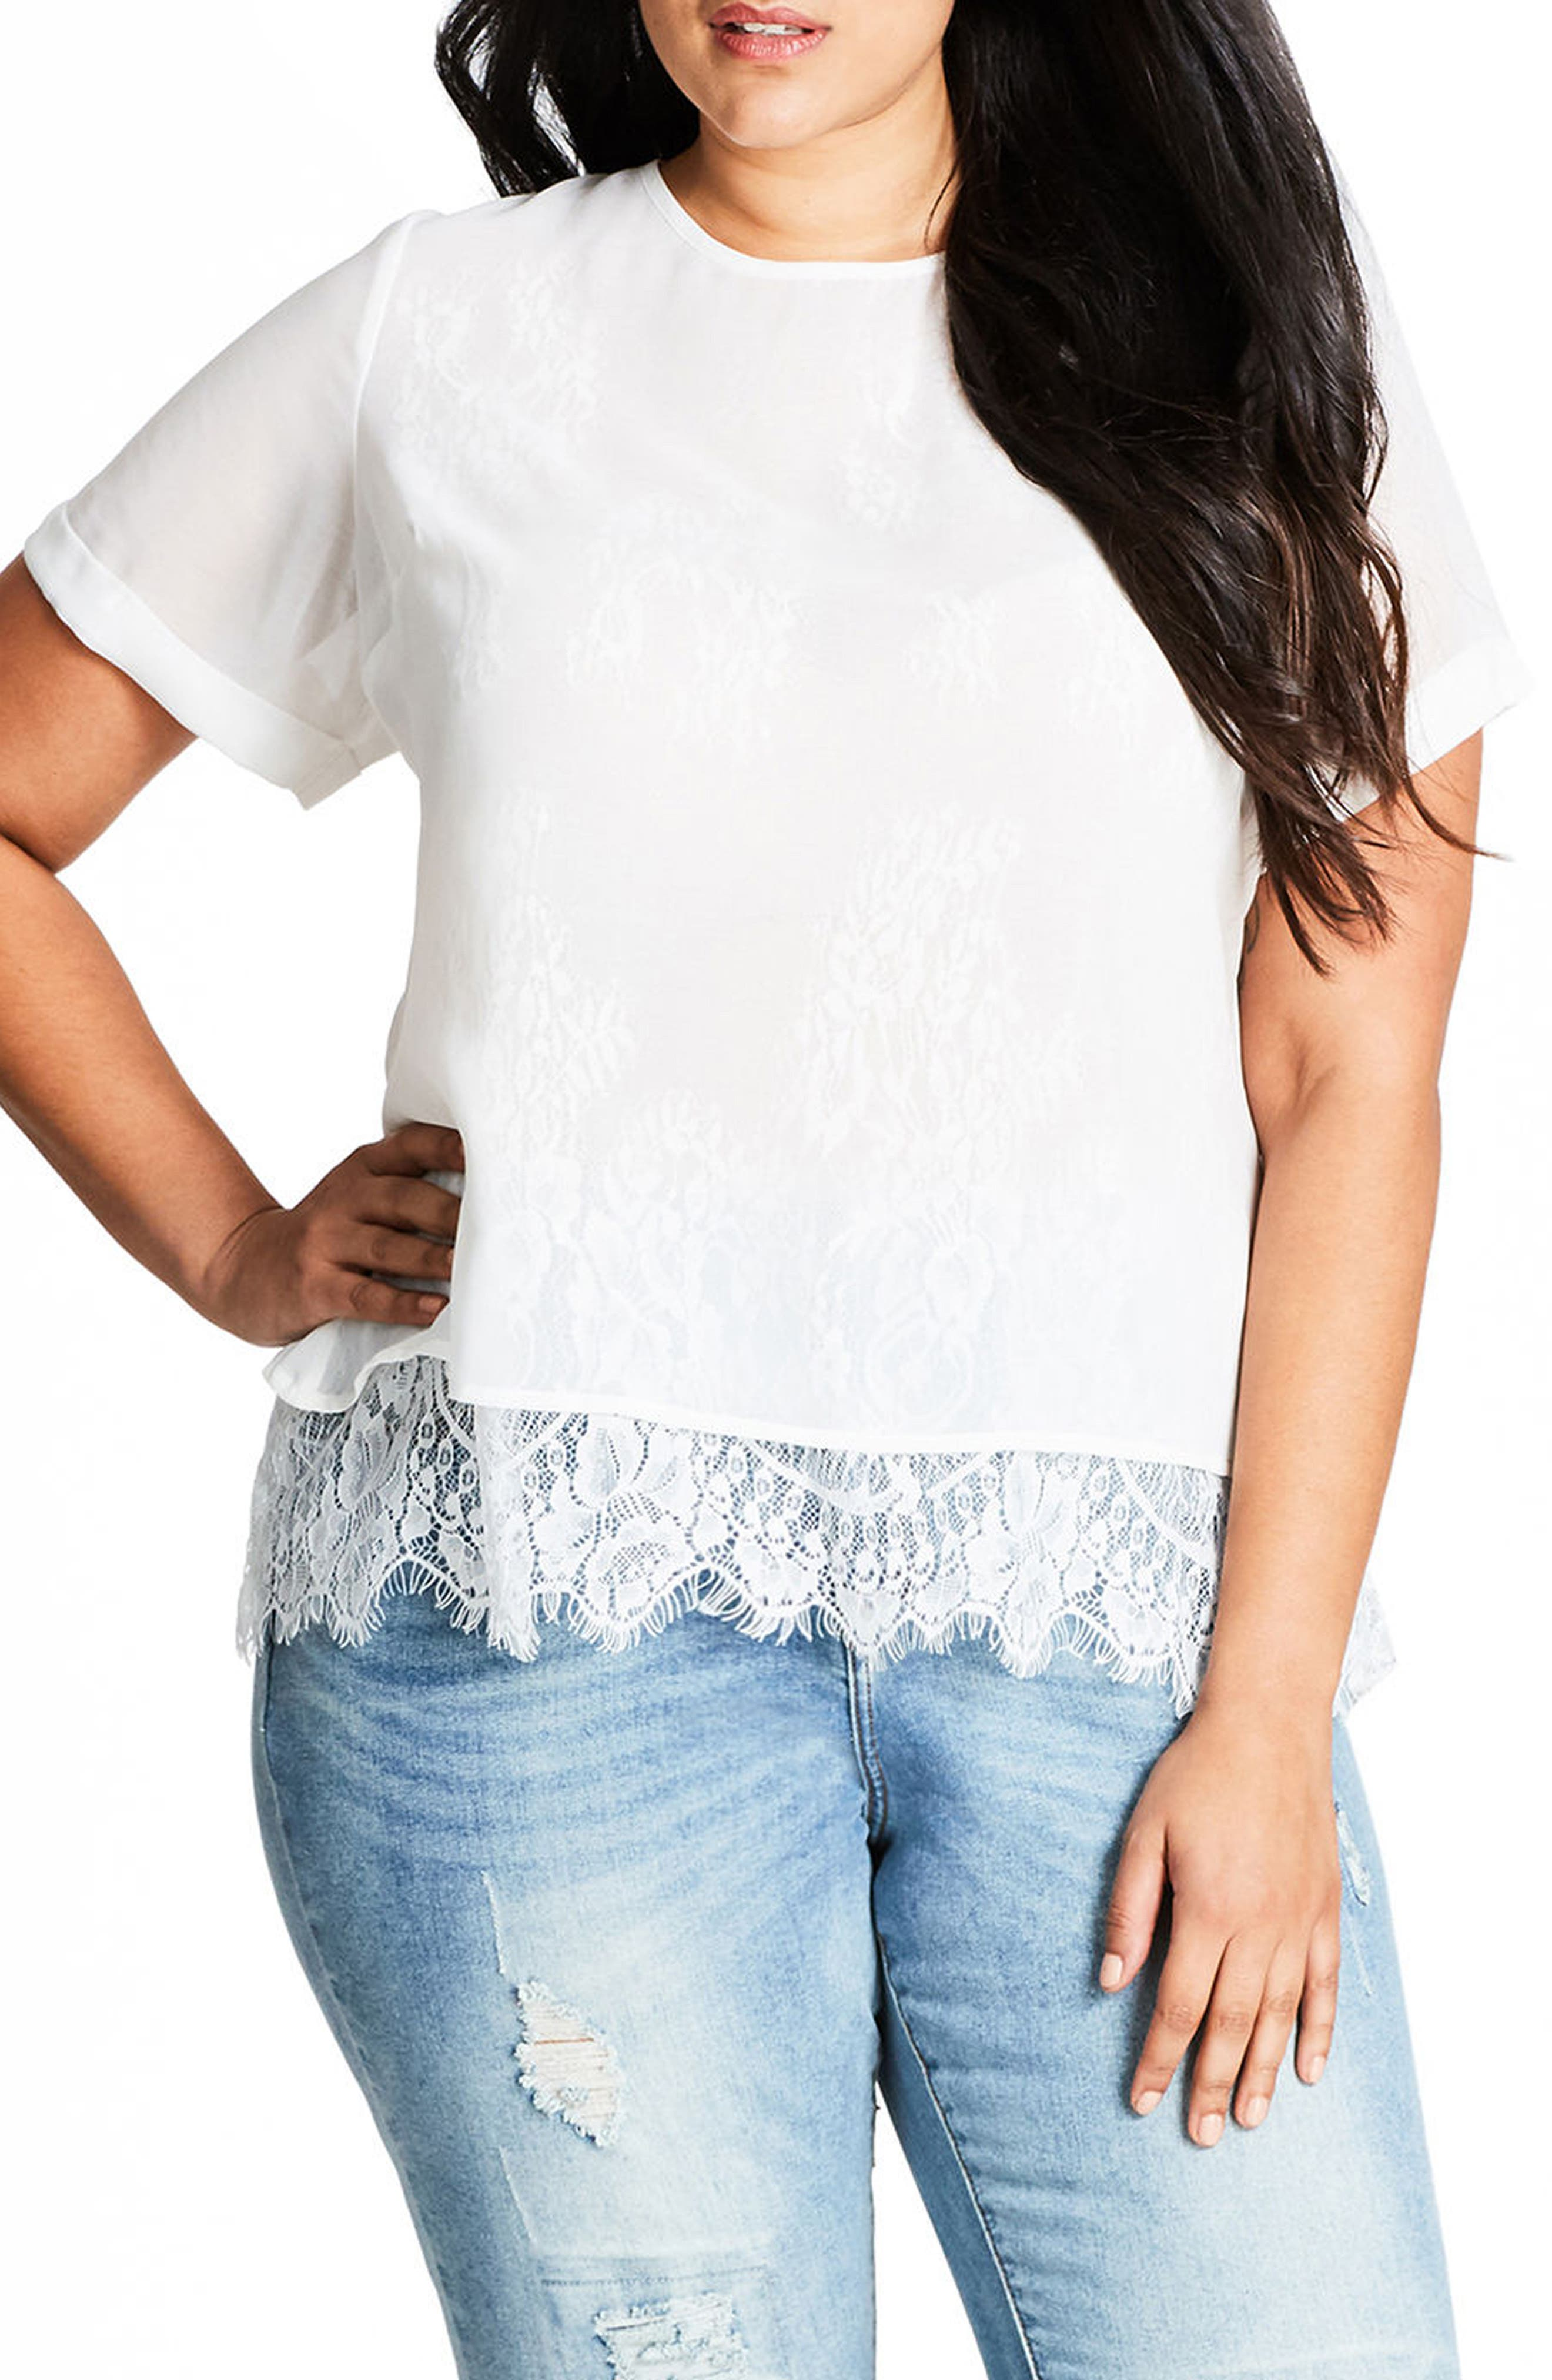 CITY CHIC Lace Scallop Top